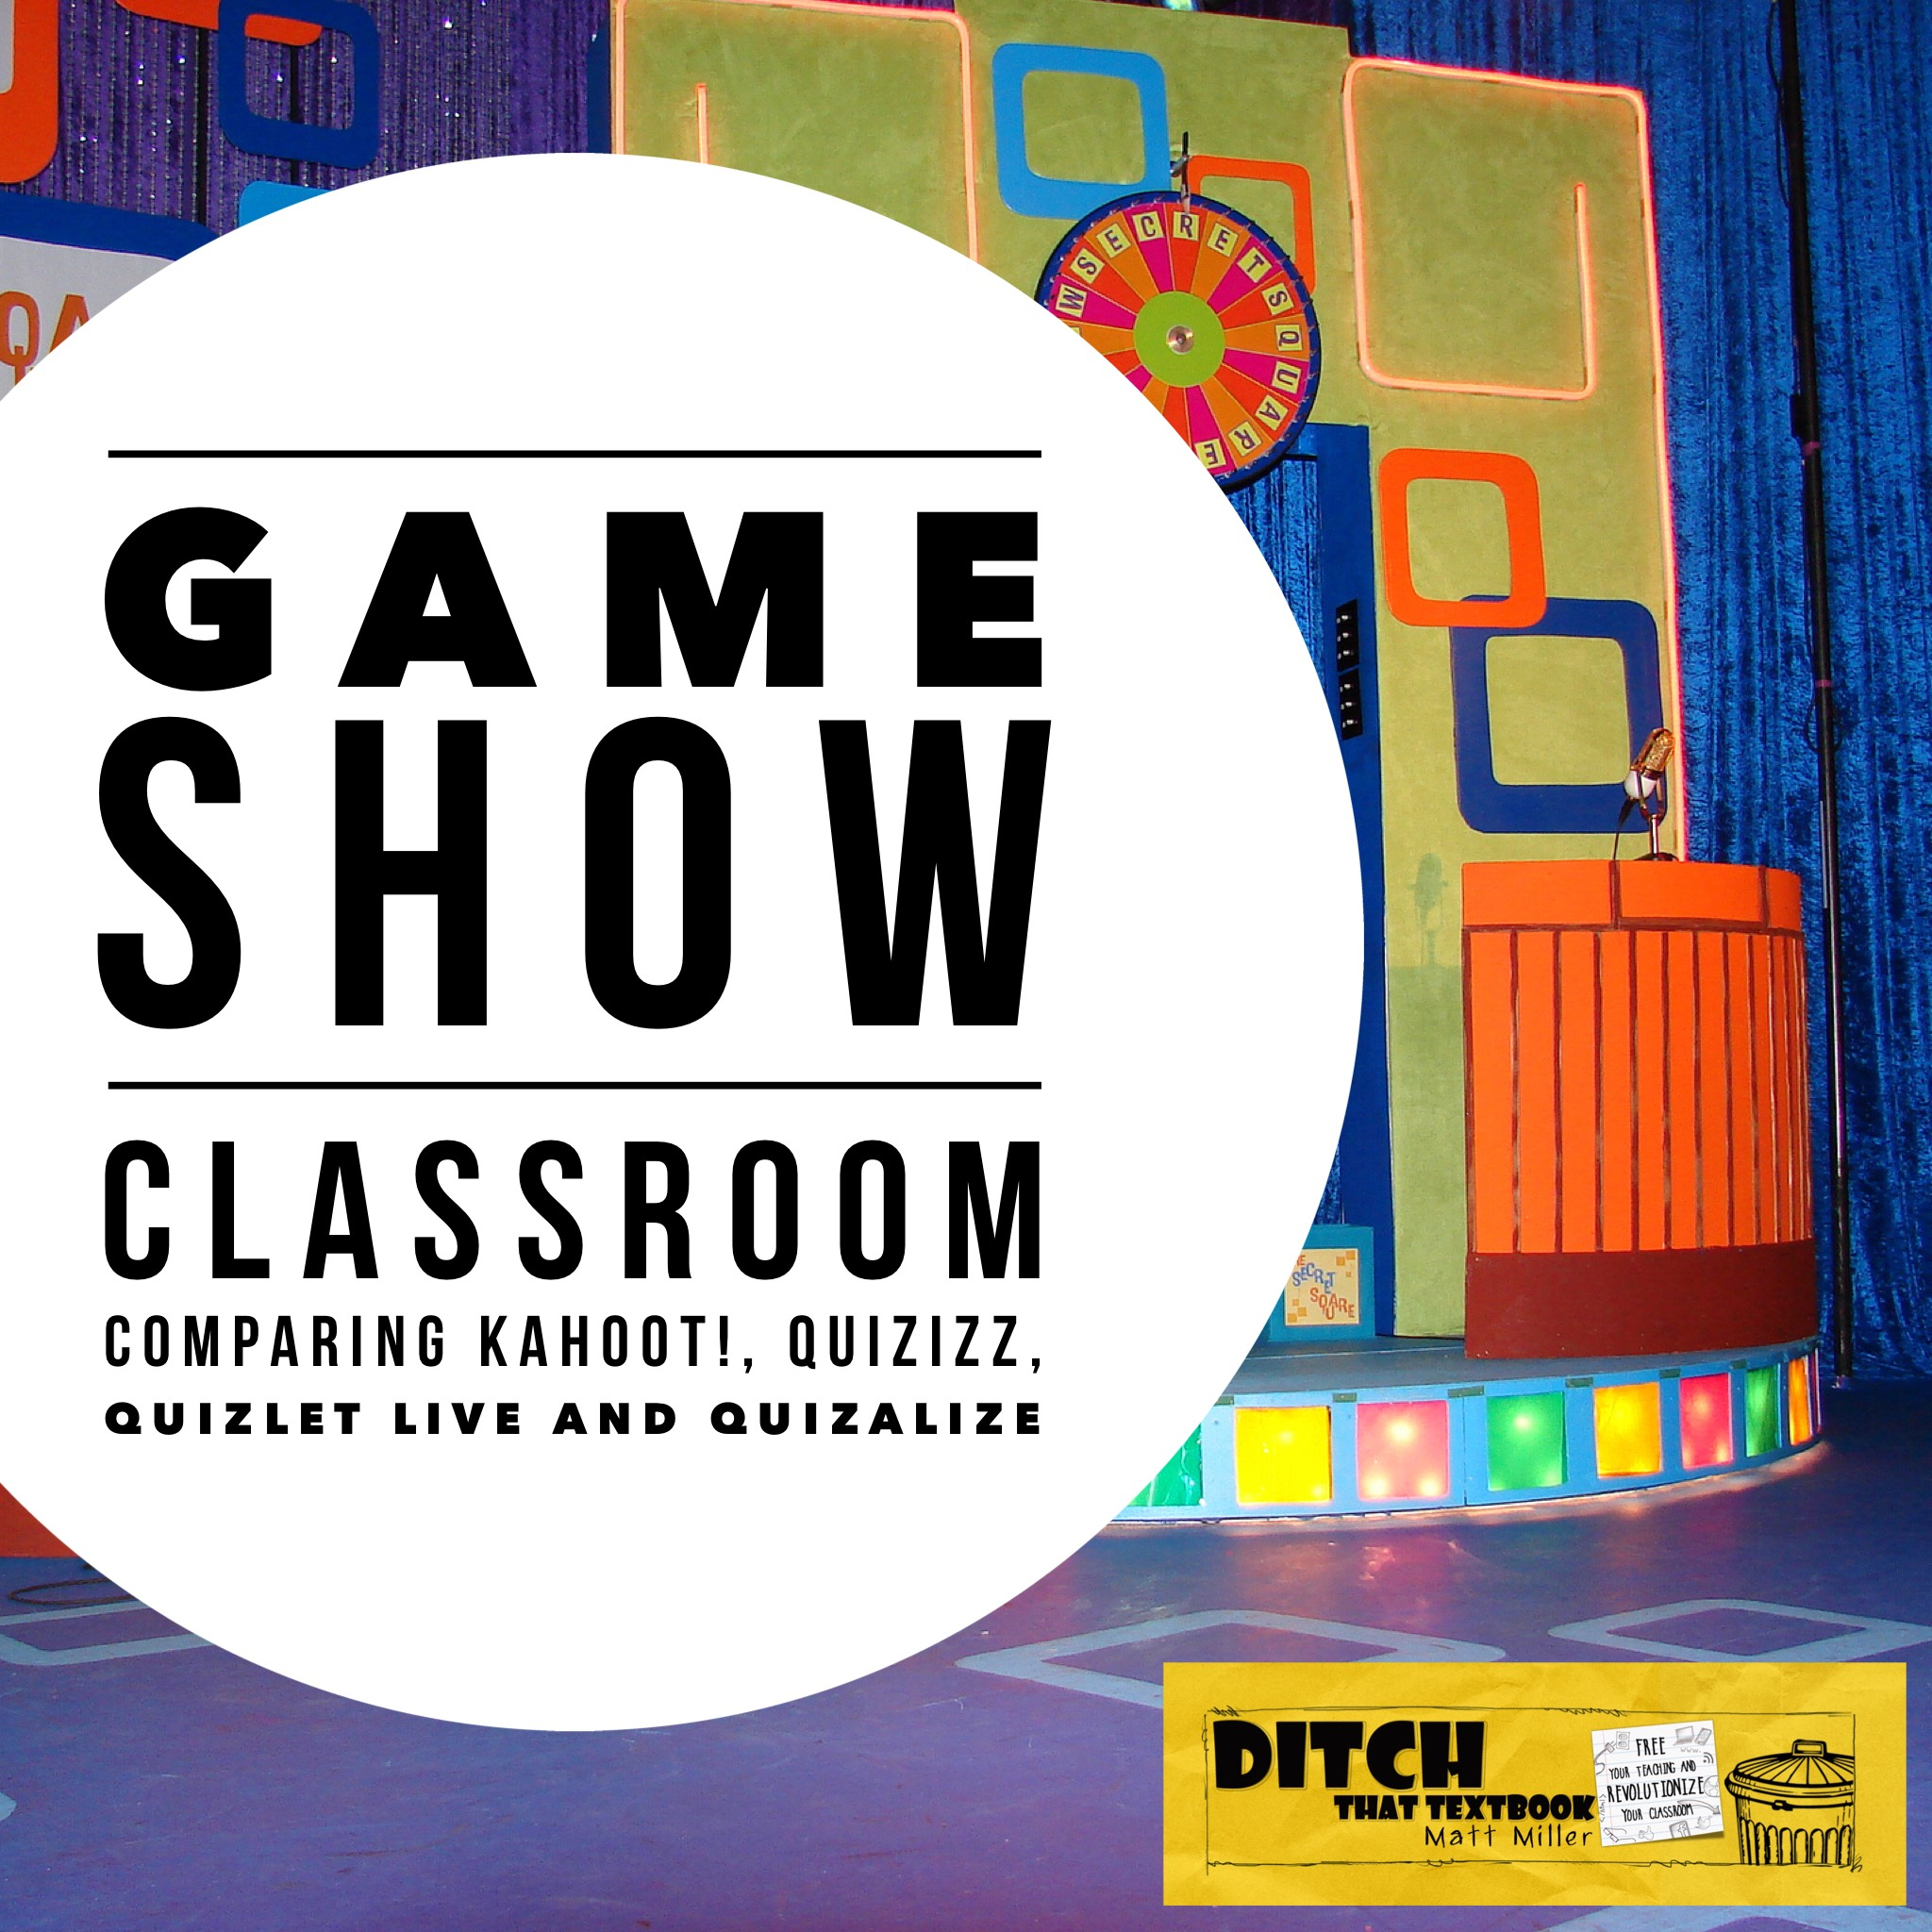 the best features of game shows can be used to review and teach in the classroom